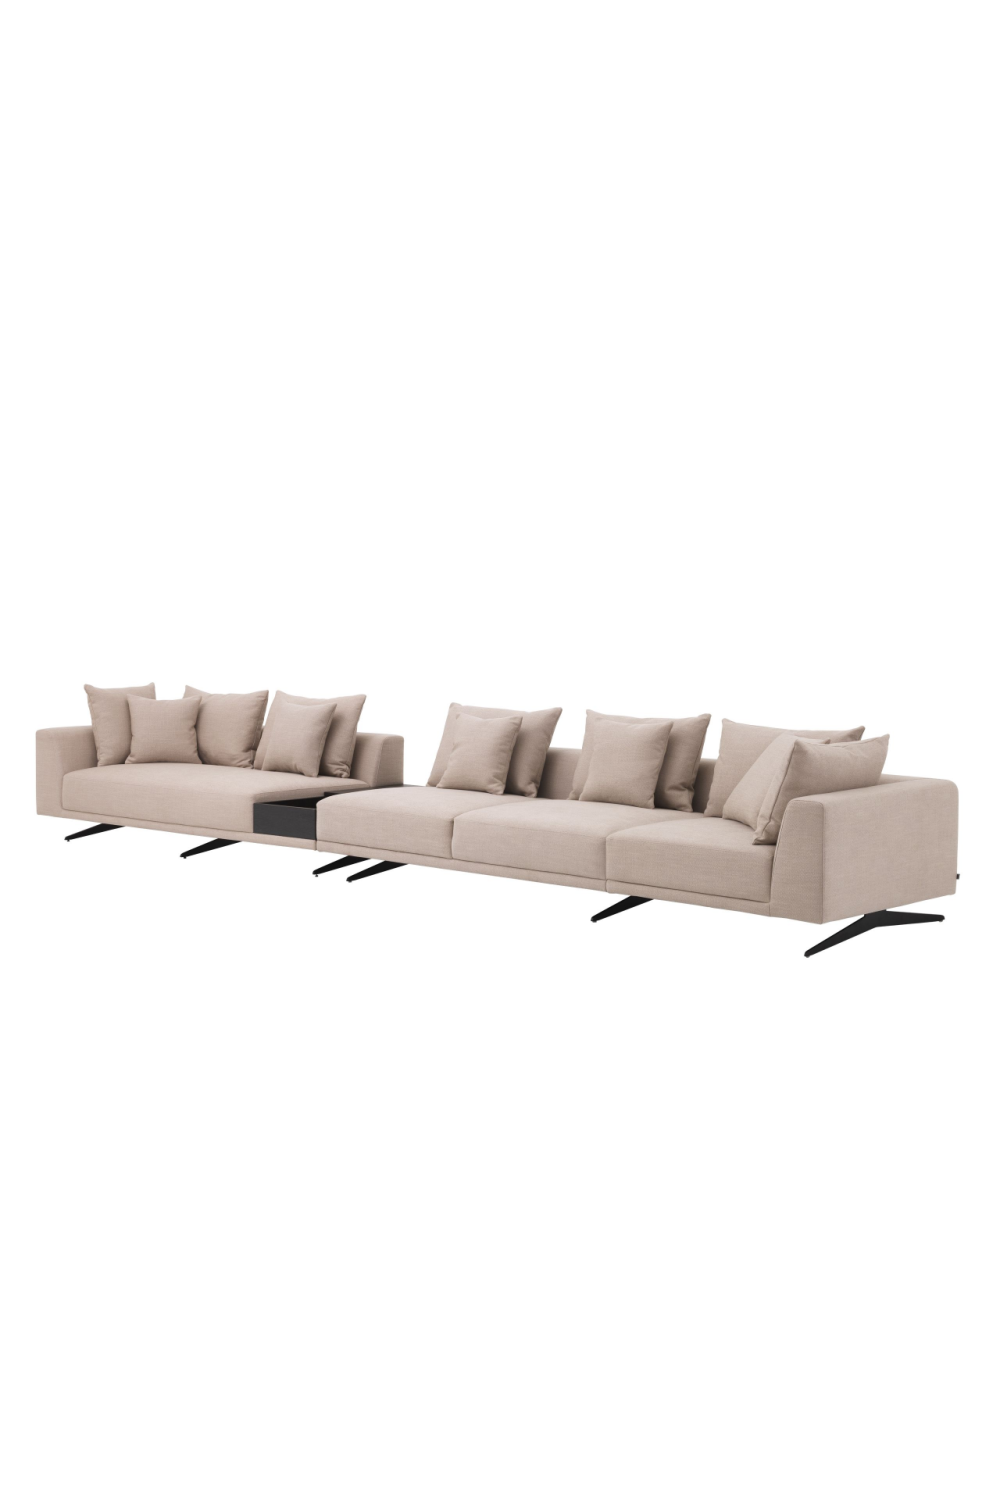 Avalon Sand Sectional Sofa | Eichholtz Endless | #1 Eichholtz Retailer